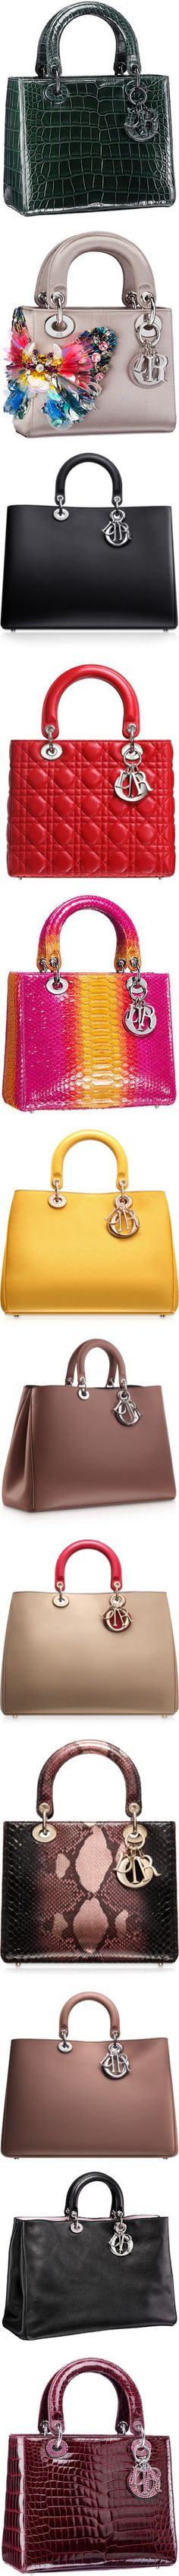 Dior bags ♥✤ | Keep the Glamour | BeStayBeautiful